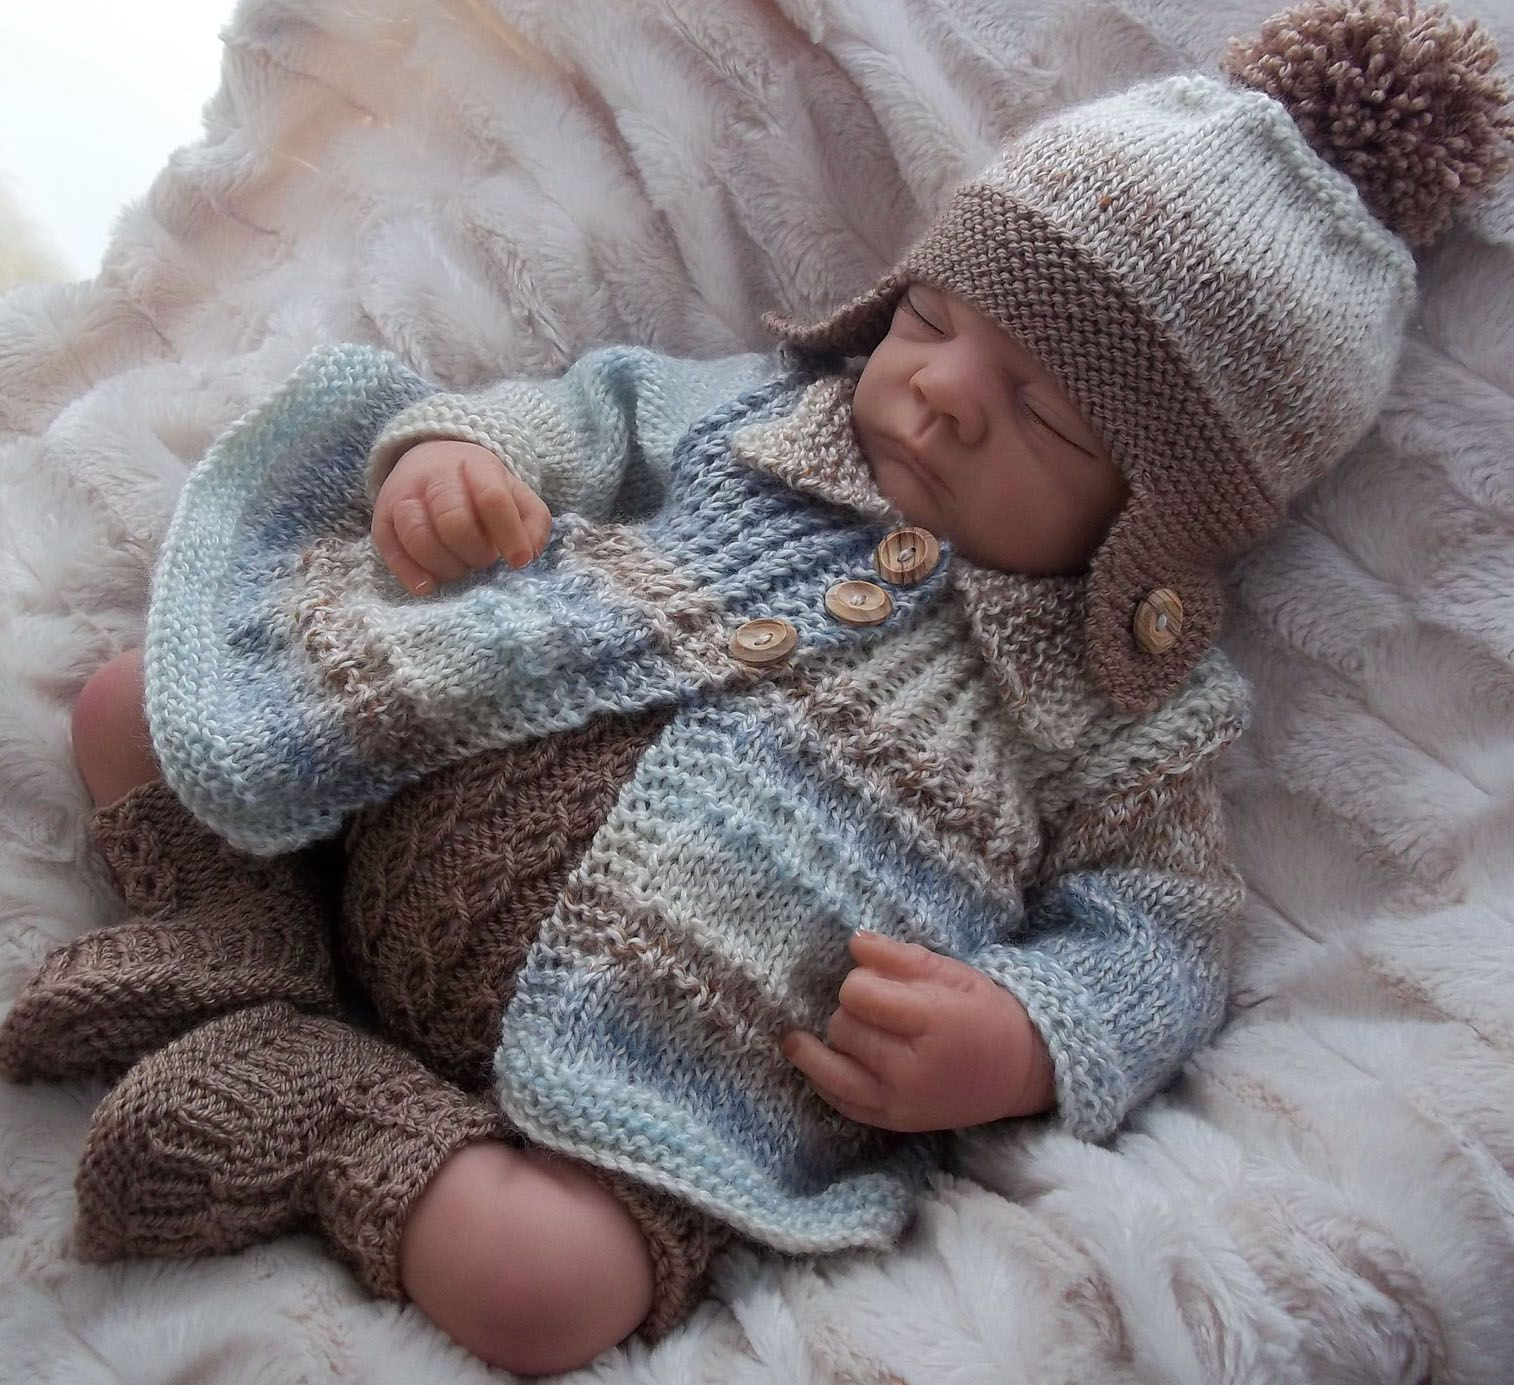 Tipeetoes Designer Baby Outfits, Knitting Patterns, Beanies ...